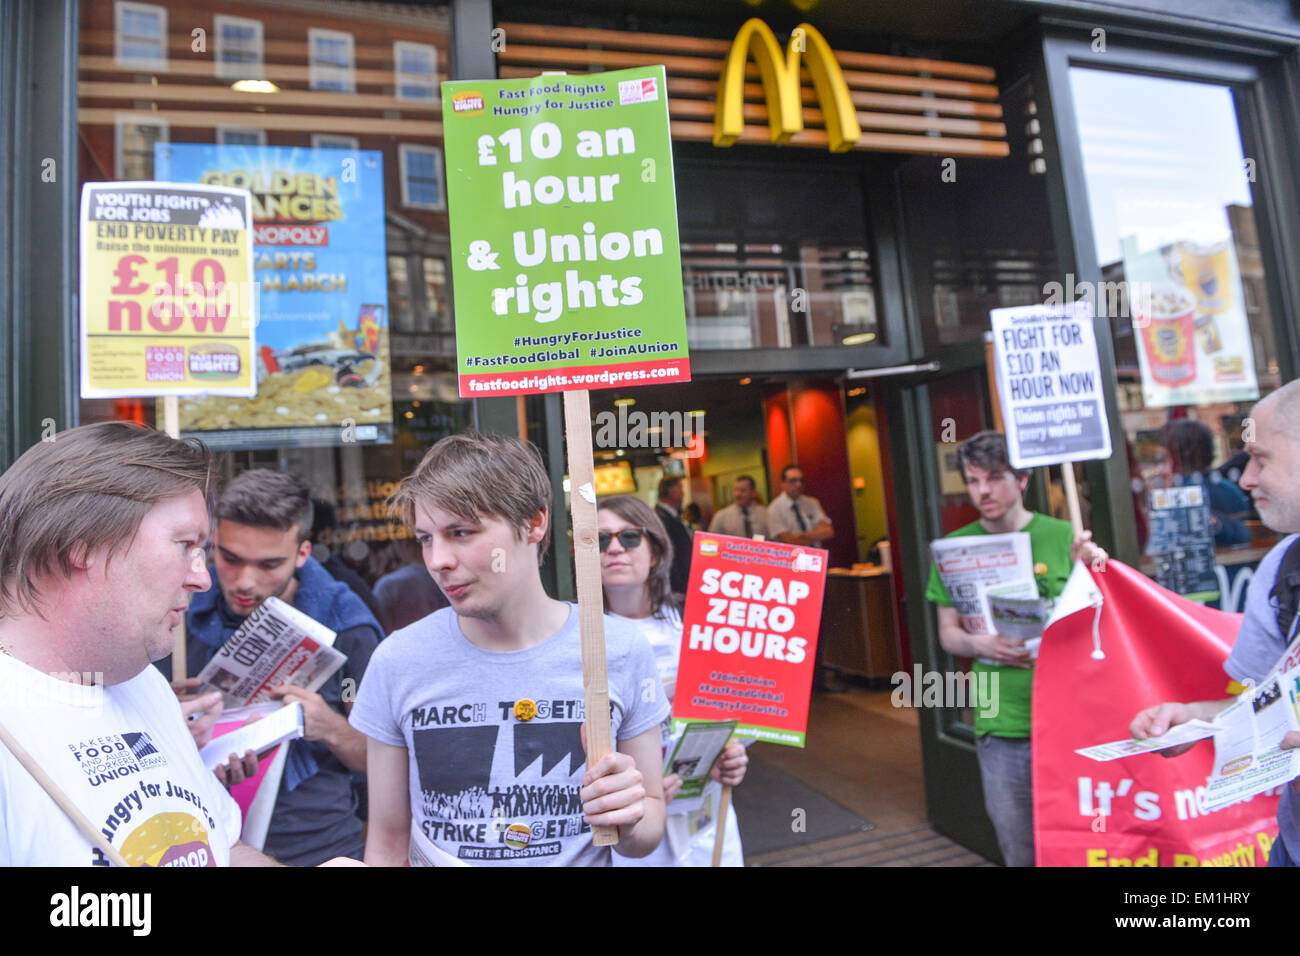 Whitehall, London, UK. 15th April 2015. 'Fast Food Rights', protesters stand outside McDonalds on Whitehall - Stock Image